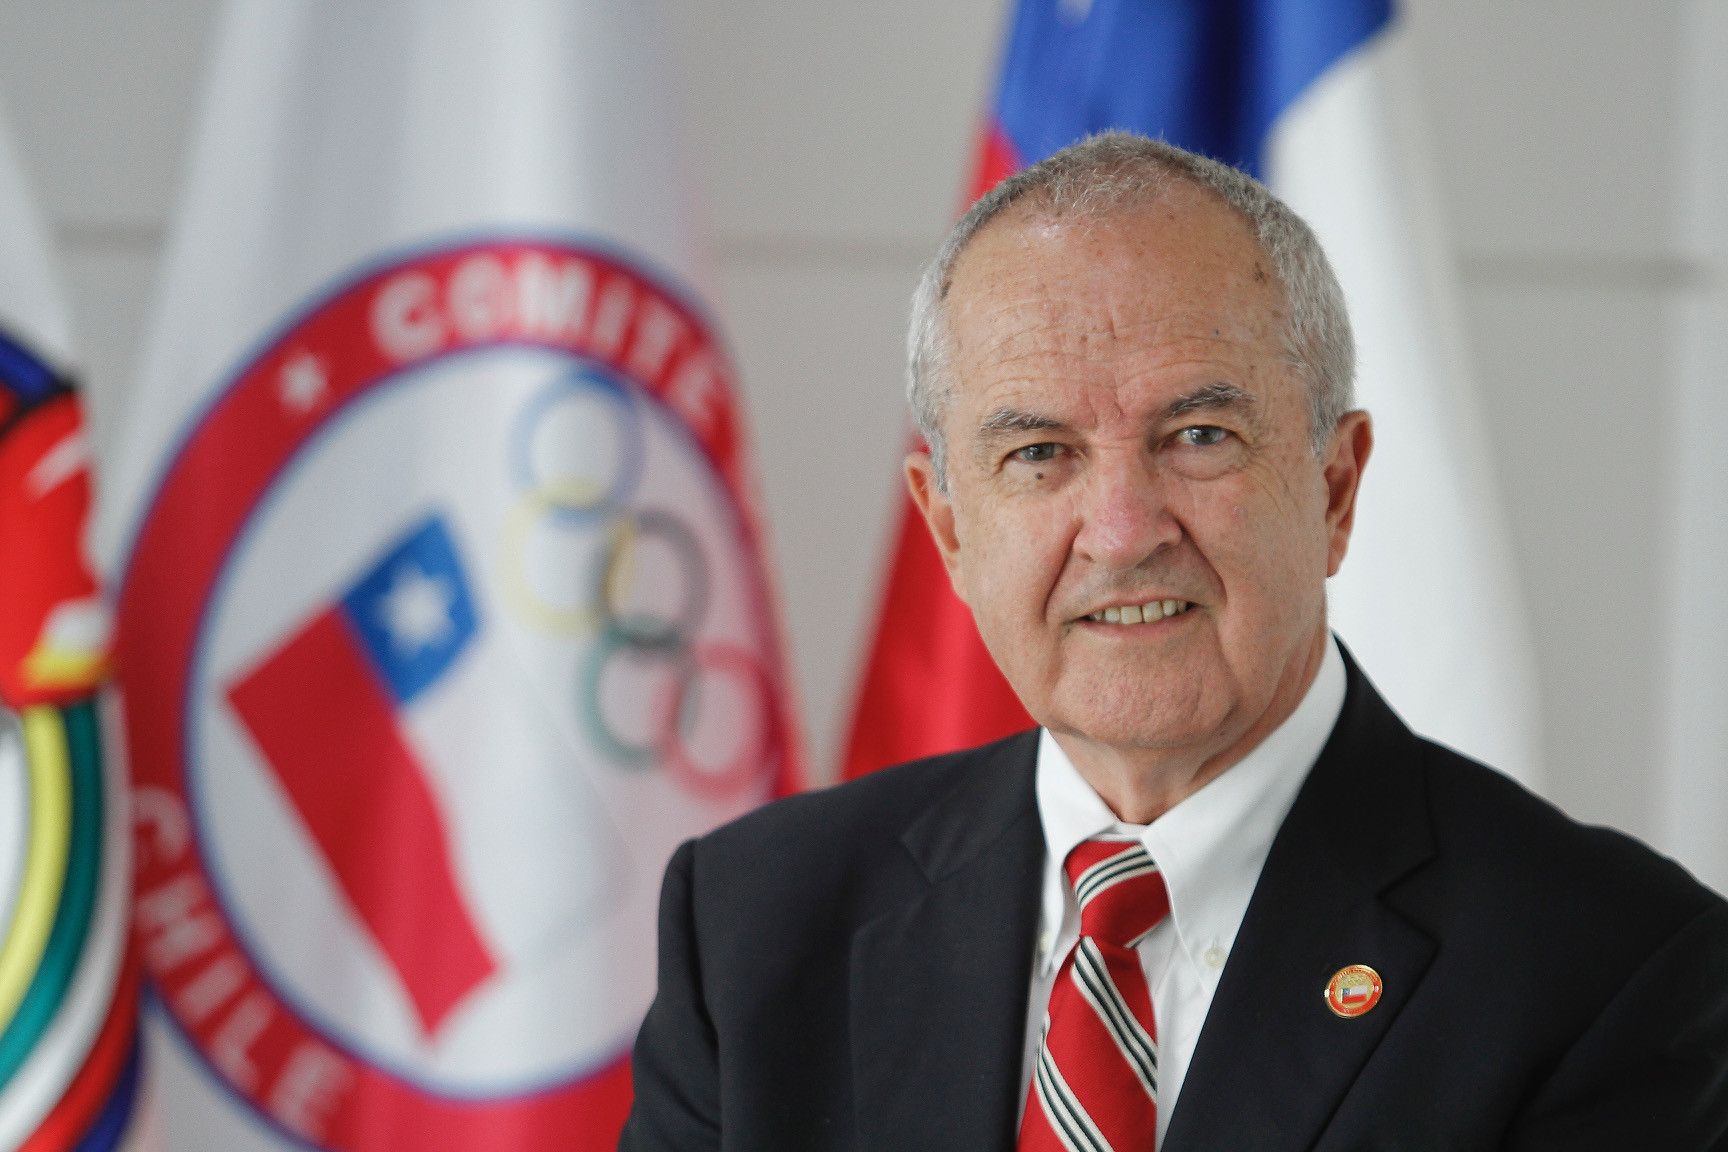 Miguel Ángel Mujica said the aim was to soon have a new federation independent of the National Olympic Committee ©COCH